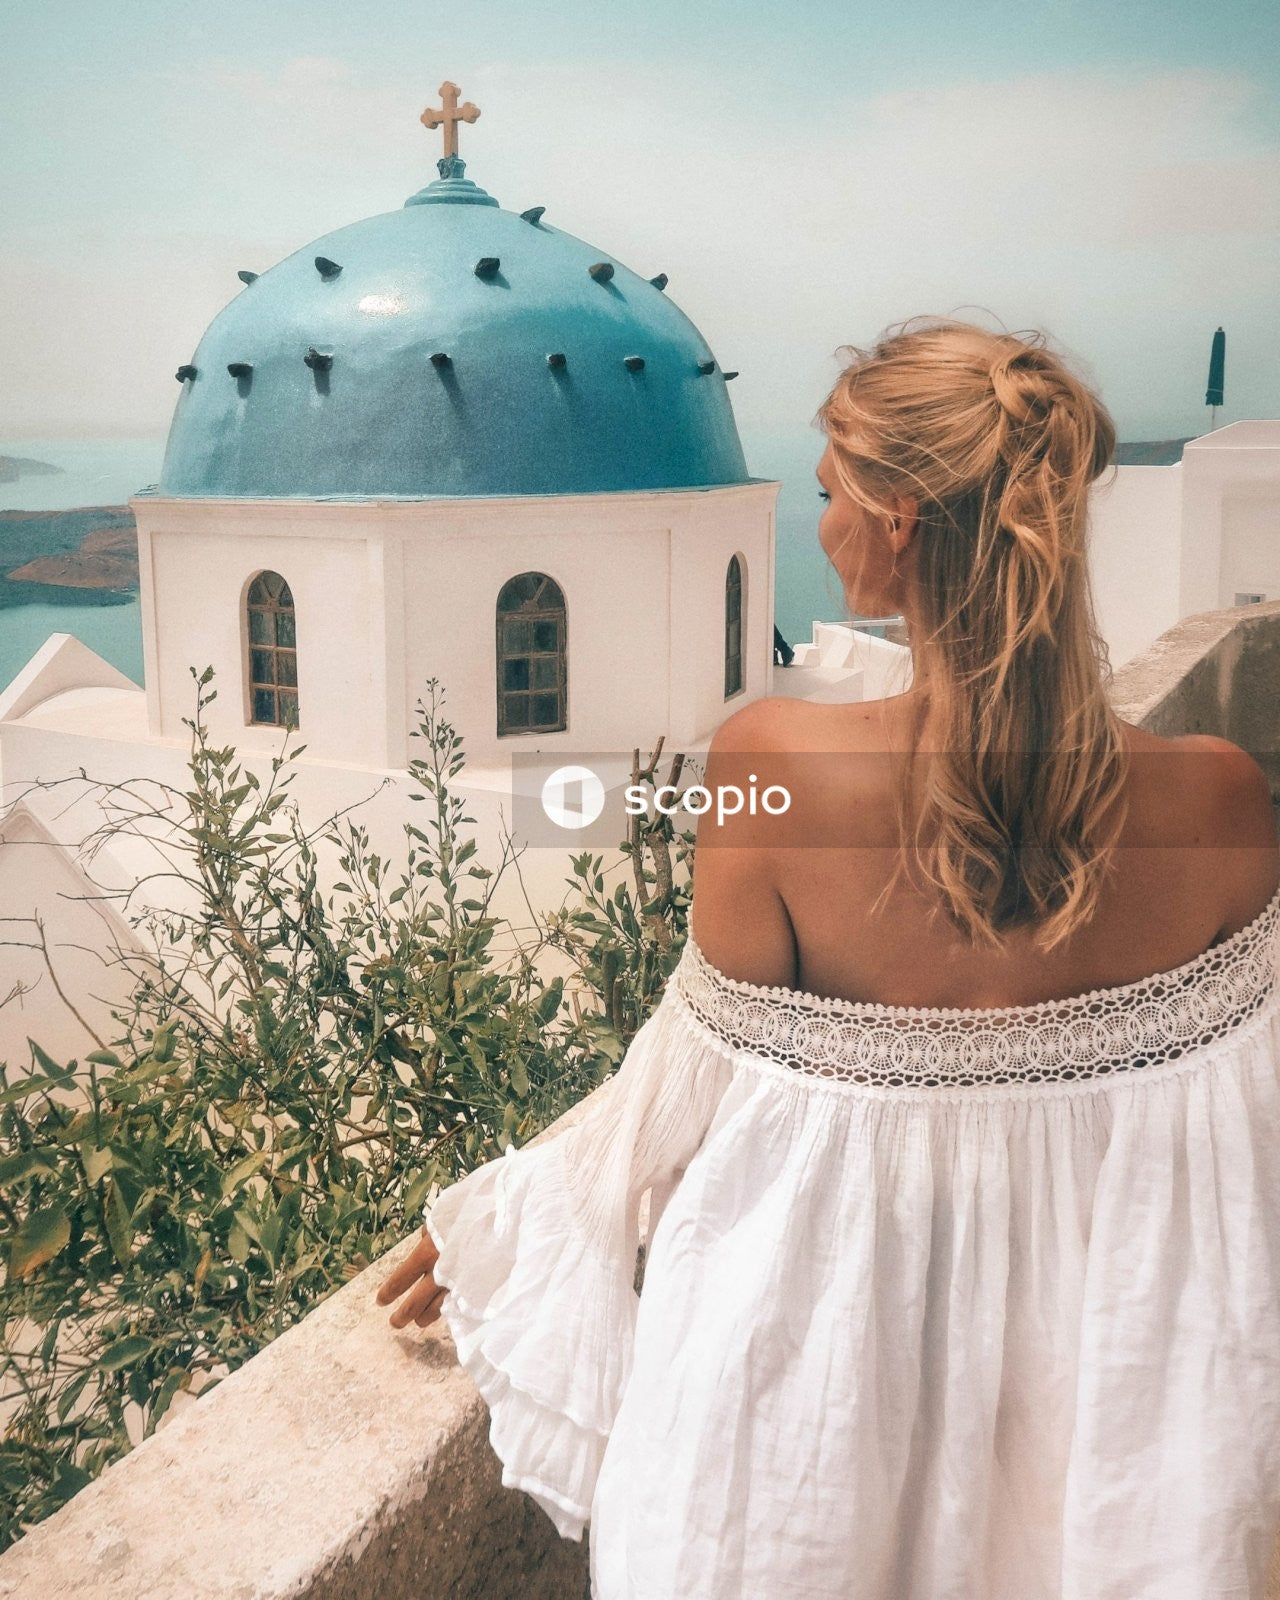 Woman wearing white off-shoulder blouse facing blue and white dome top building